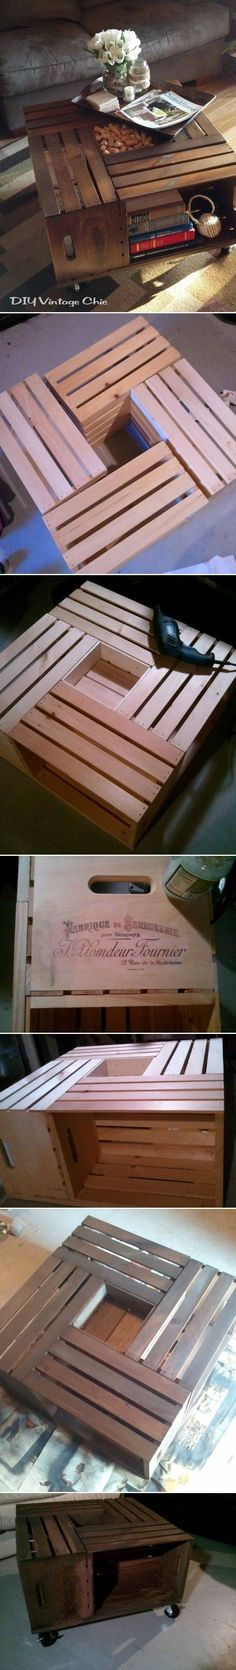 DIY Wine Crate Table crafts craft diy craft easy crafts diy ideas diy crafts do it yourself crafty easy diy diy furniture craft furniture diy table craft decor diy home decorations easy diy craft ideas diy tutorials. No need for wheels. Home Projects, Home Crafts, Diy Home Decor, Diy Crafts, Crate Crafts, Room Decor, Wine Crate Table, Wine Crates, Wooden Crates